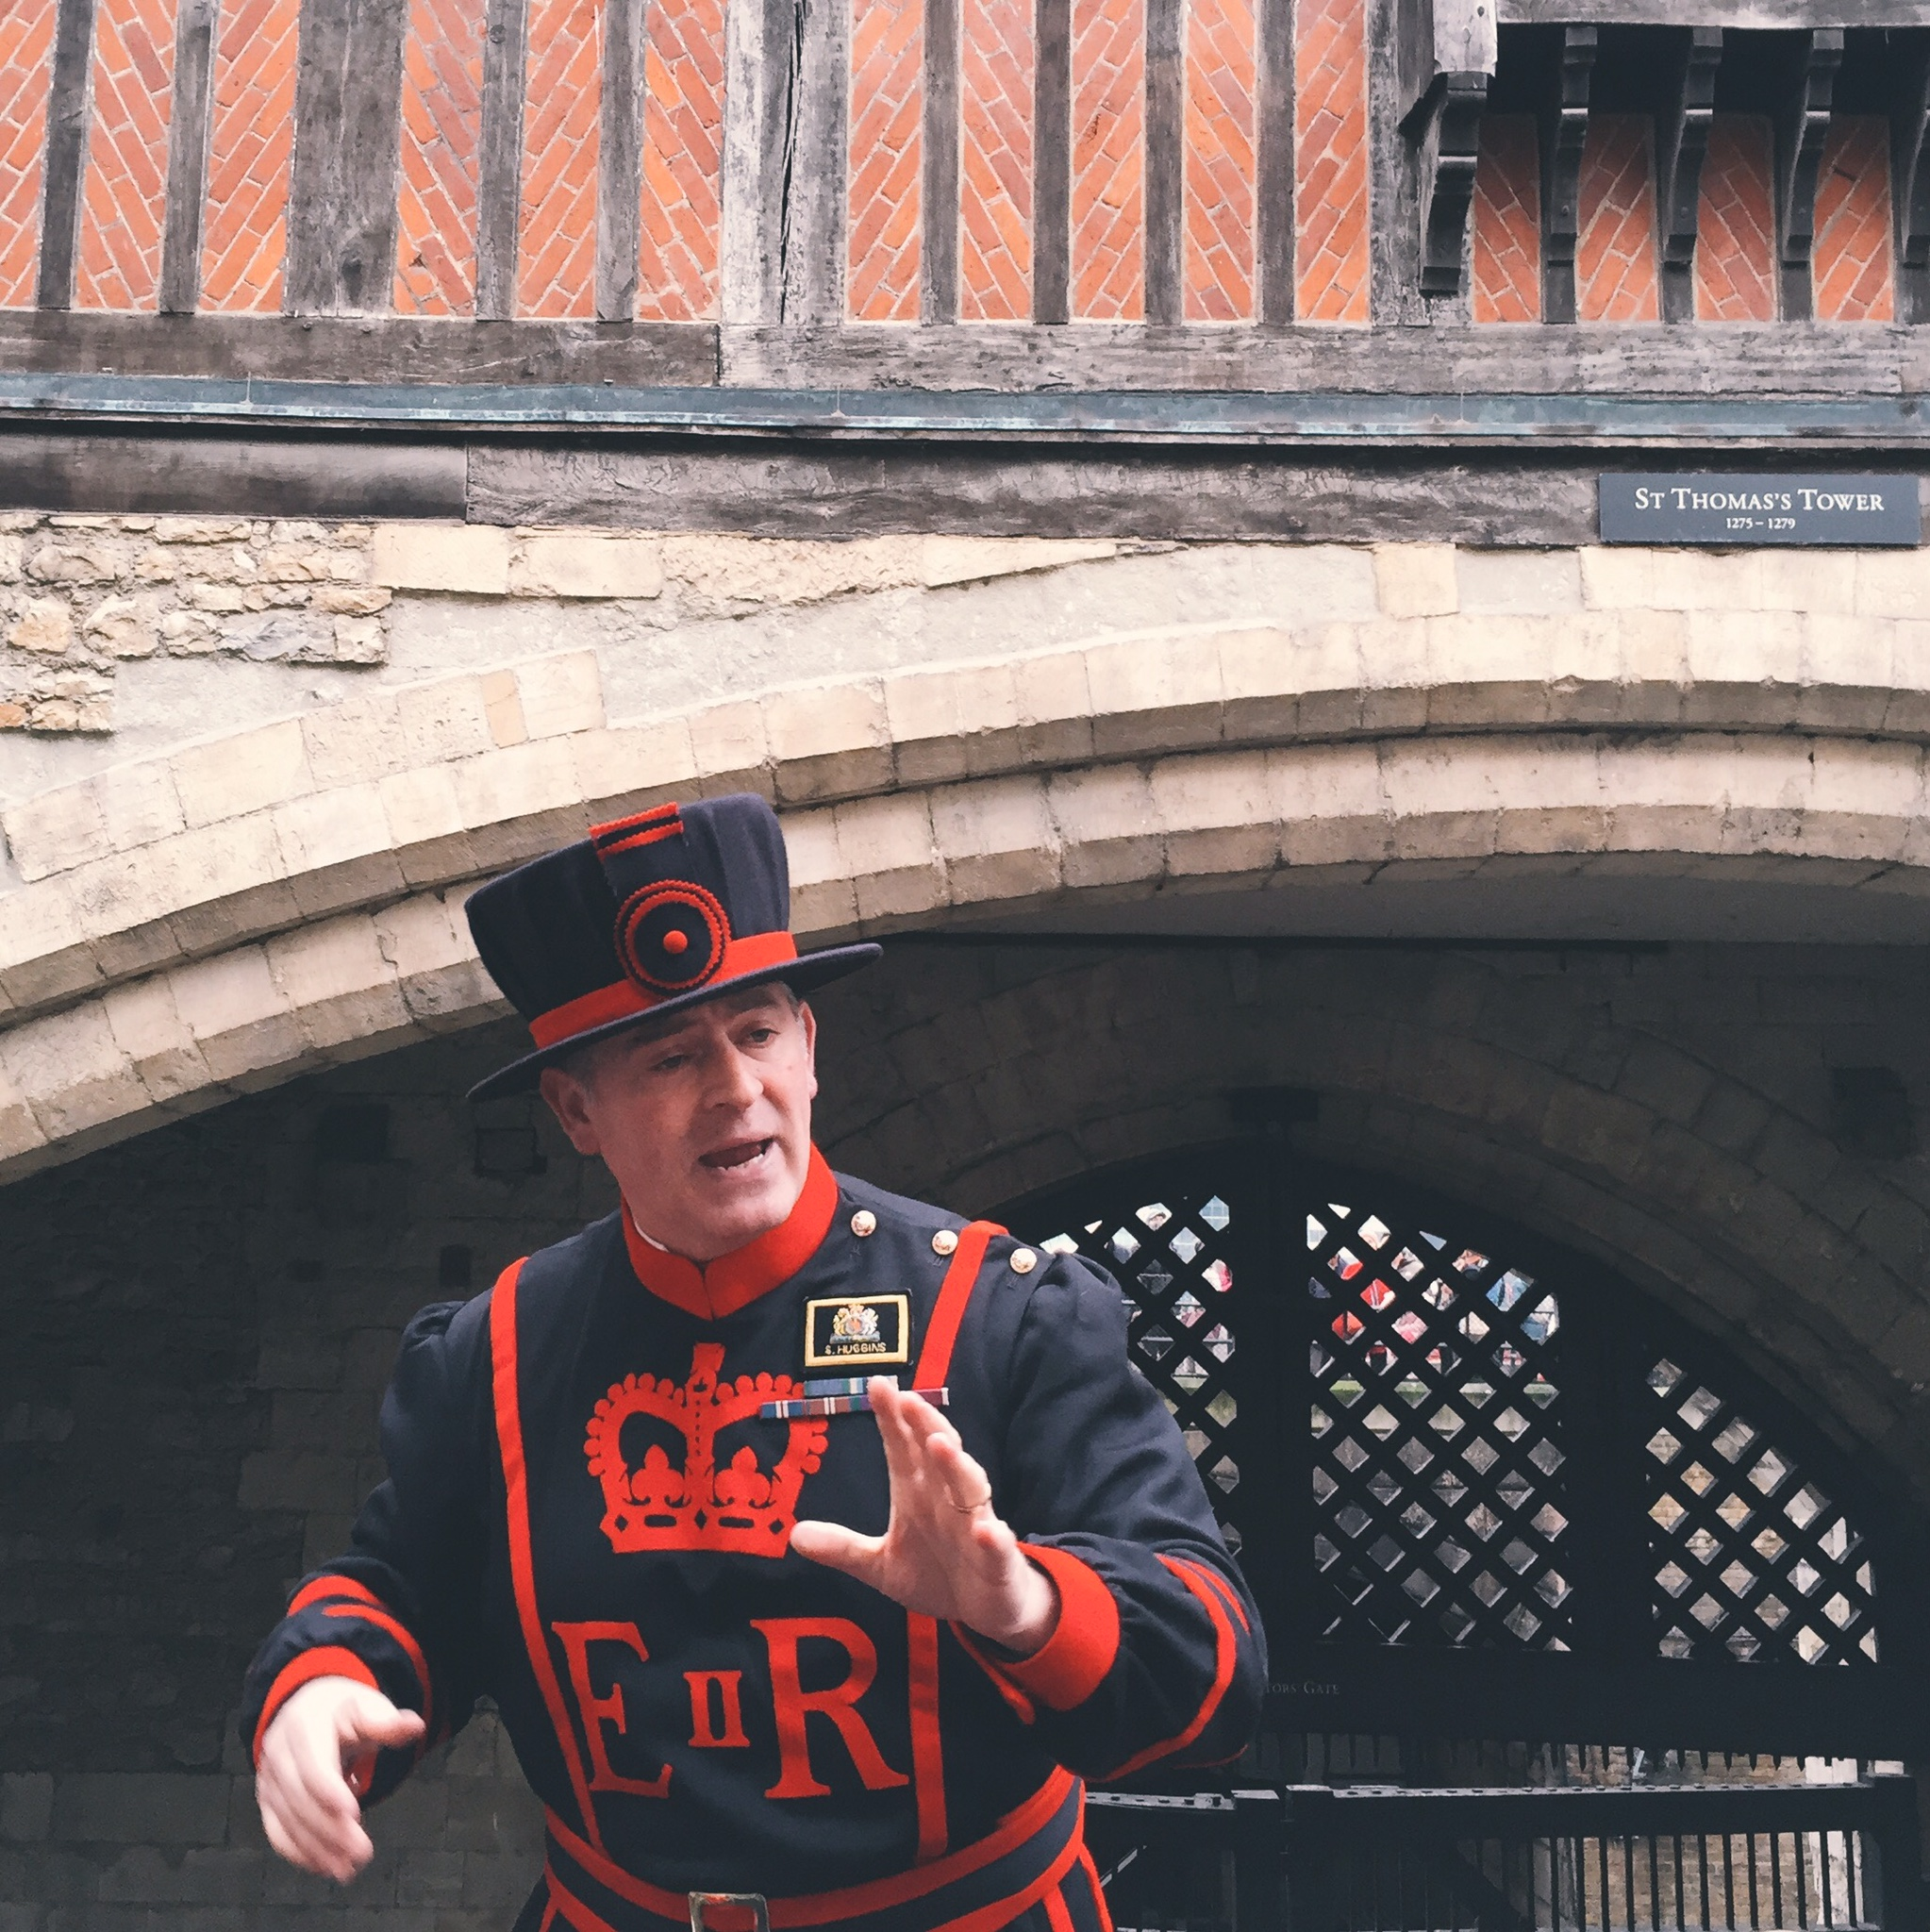 The Beefeater tour of the tower of London is a must. They've got an amazing knowledge of history, and are master story-tellers too.